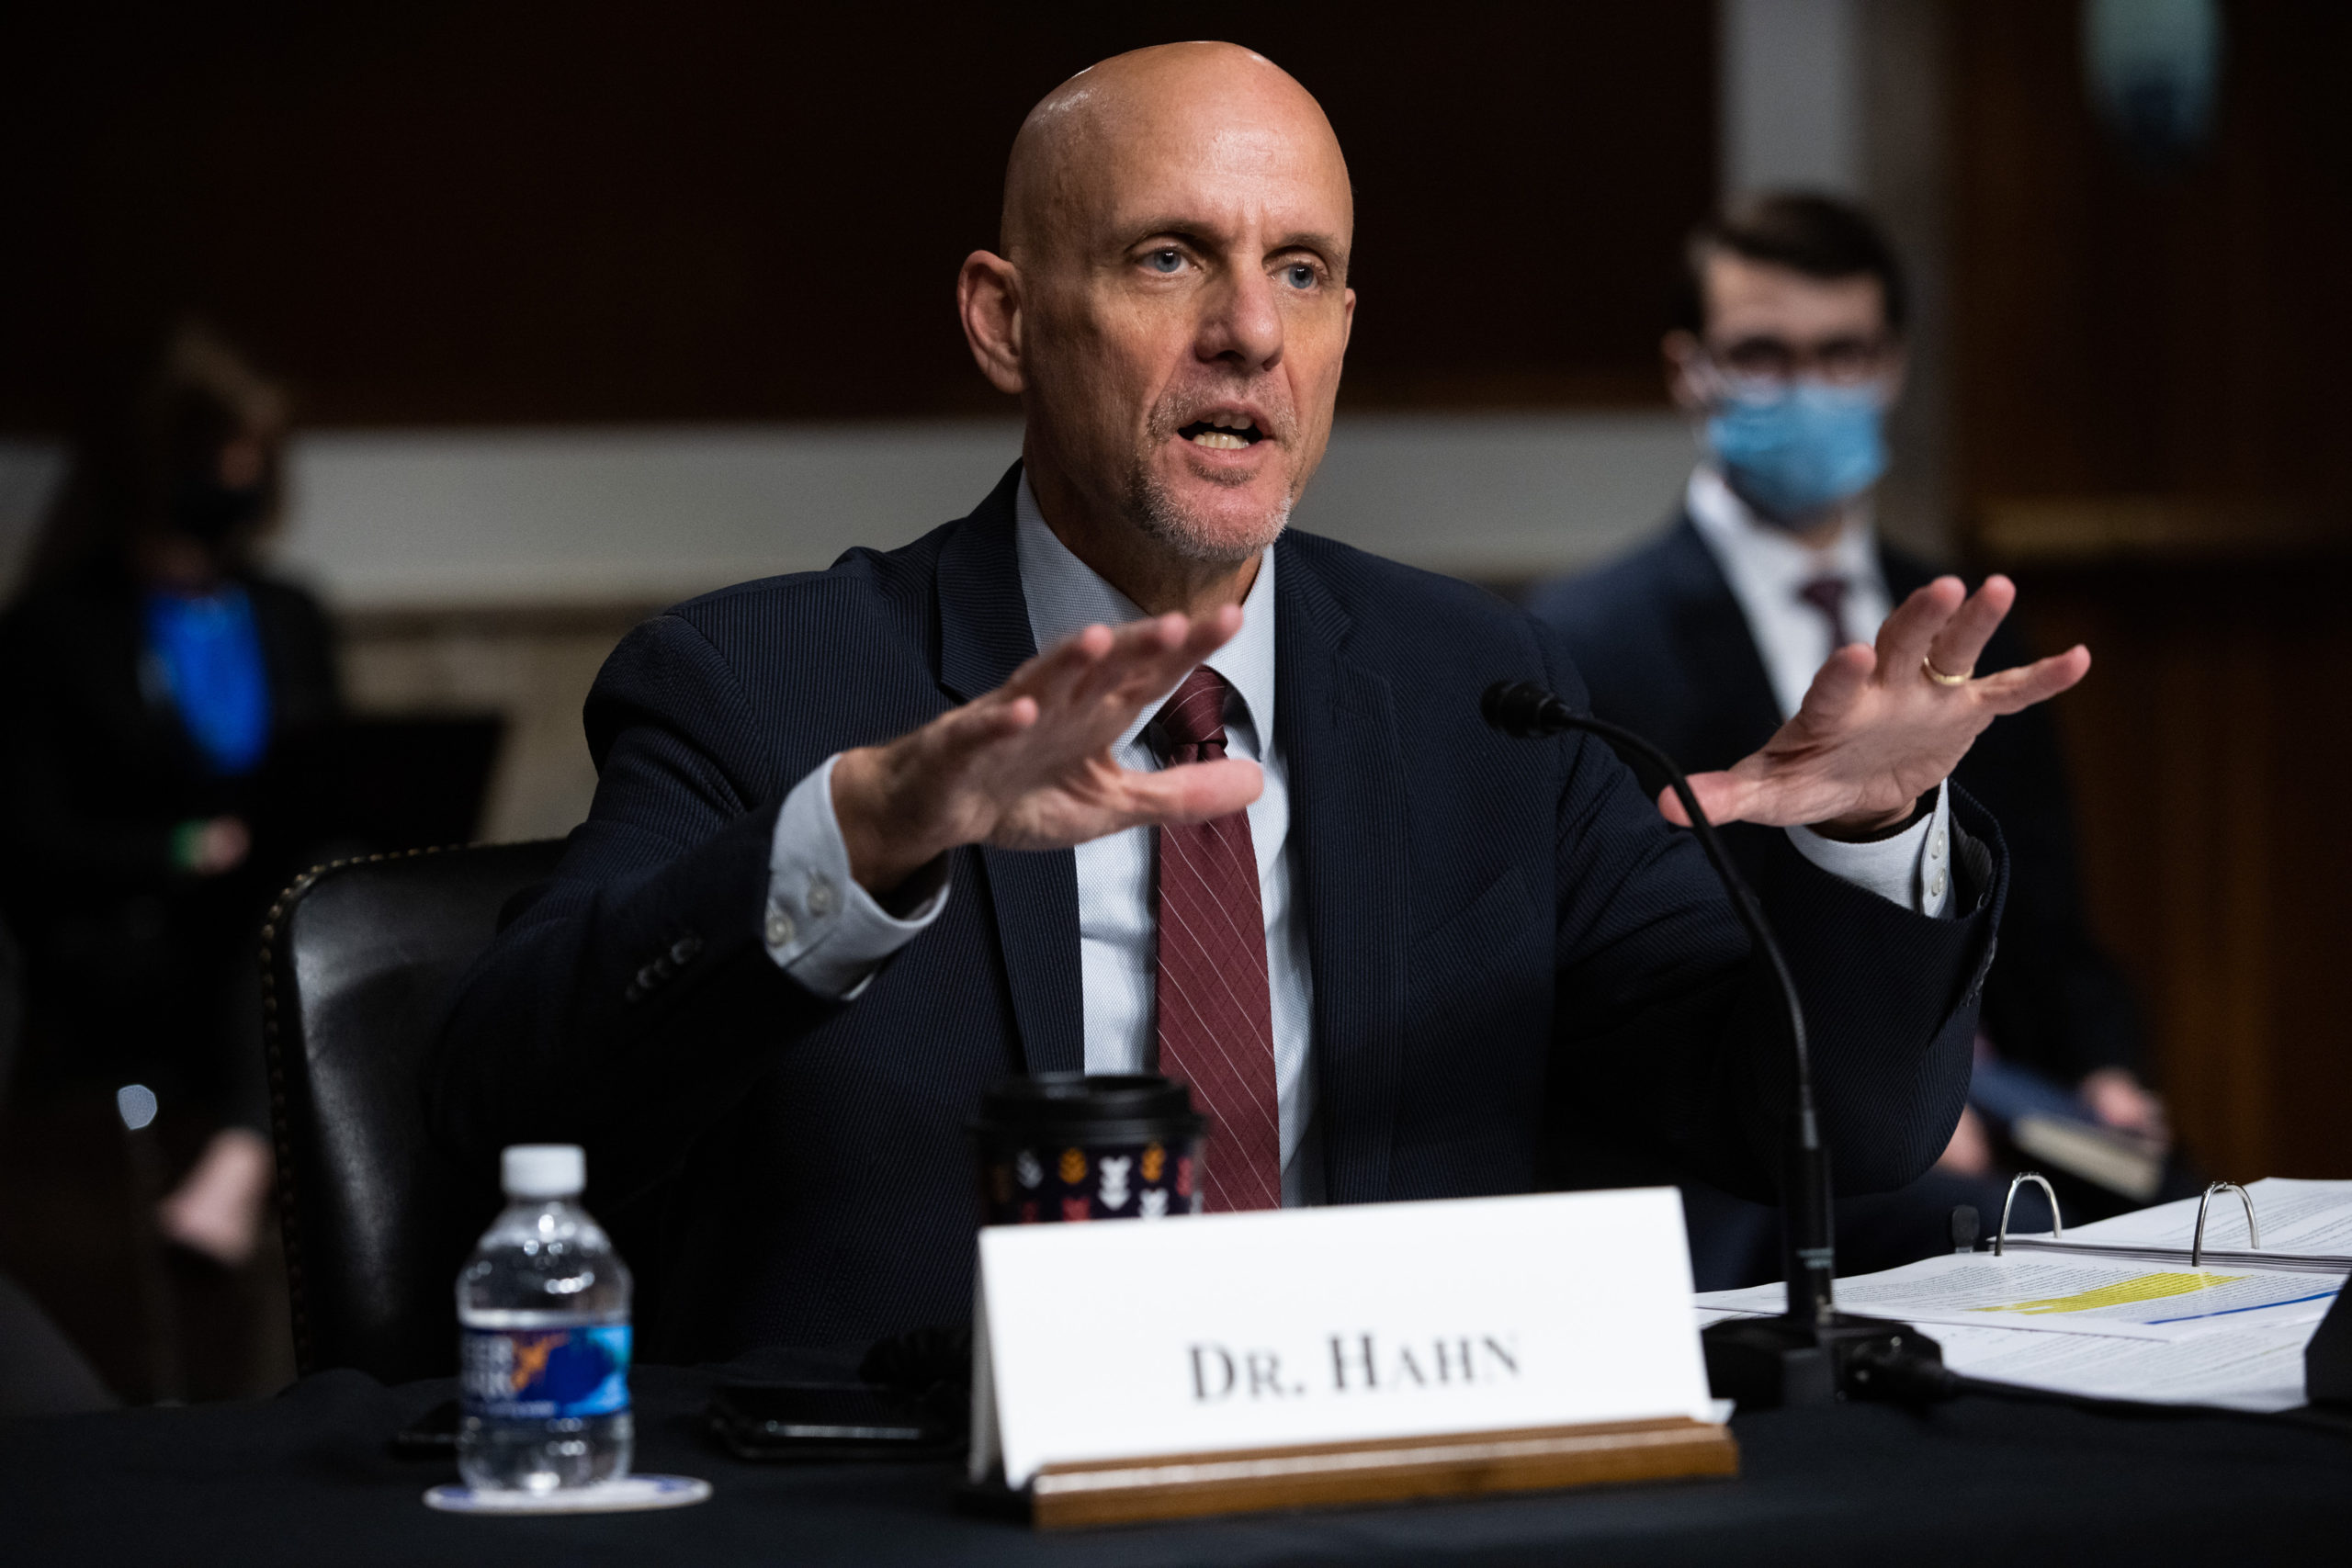 Dr. Stephen Hahn, testifies during a Senate hearing to examine coronavirus, focusing on an update on the federal response in Washington, DC, on Sept. 23. (Graeme Jennings/Pool/AFP via Getty Images)